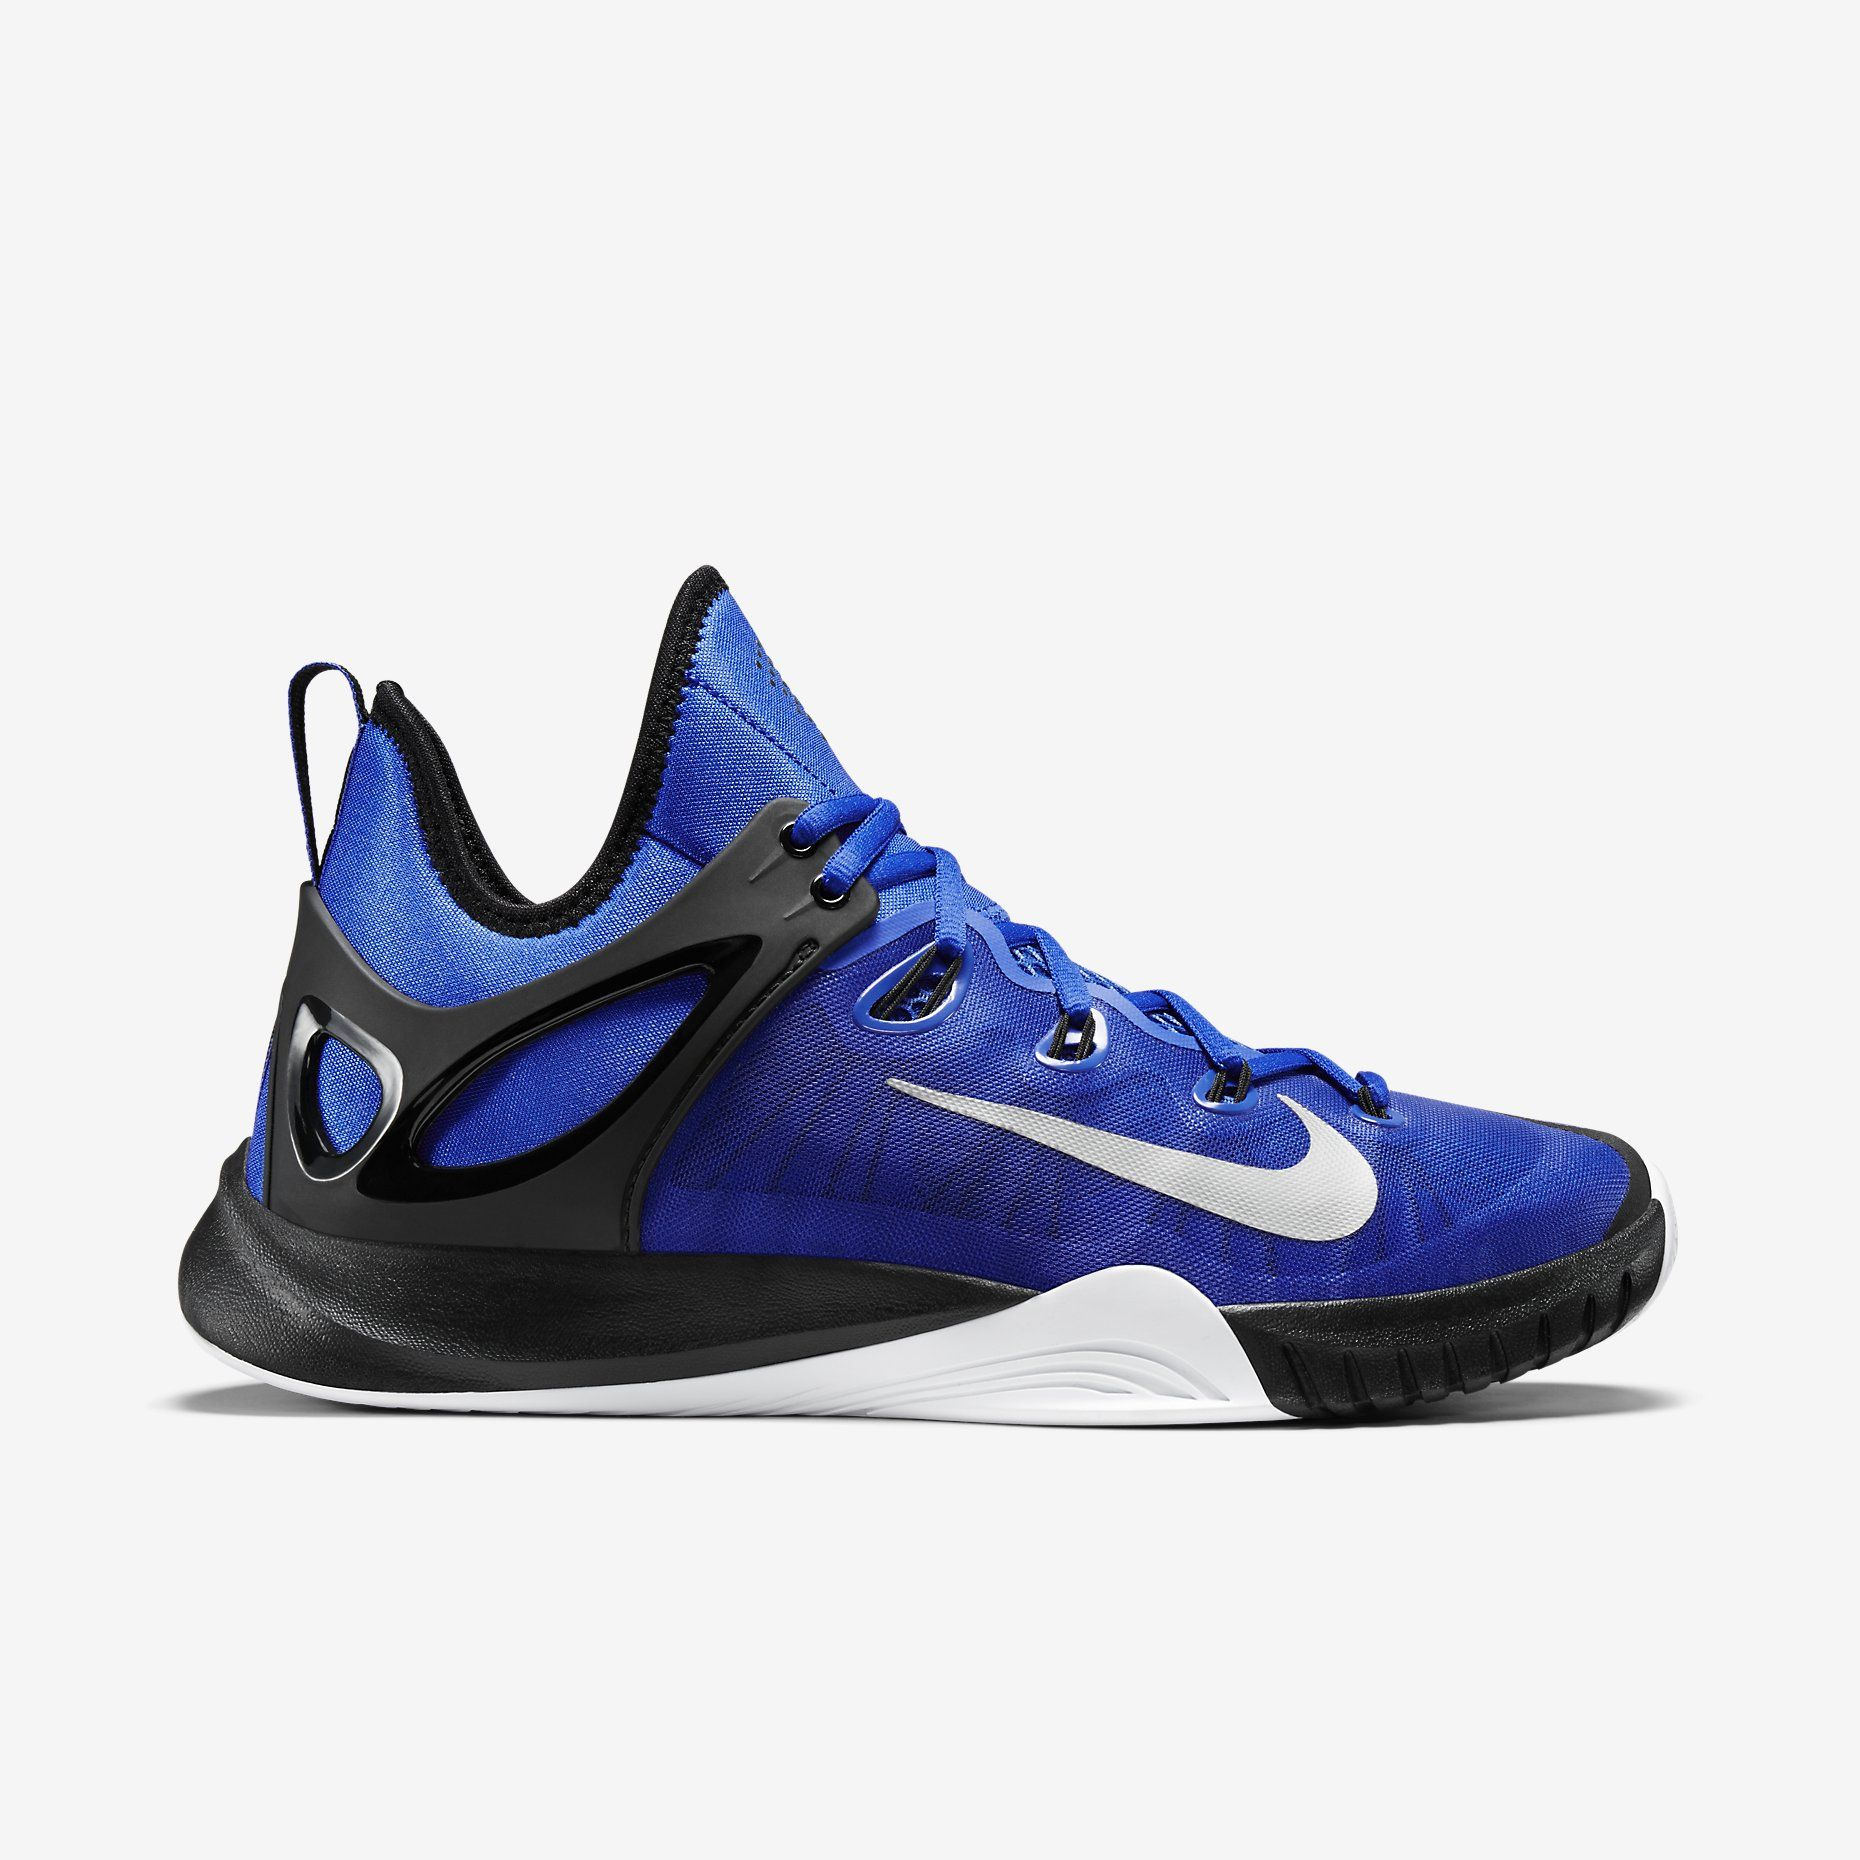 Cheap Nike Zoom HyperRev 2015 Royal Blue White Black